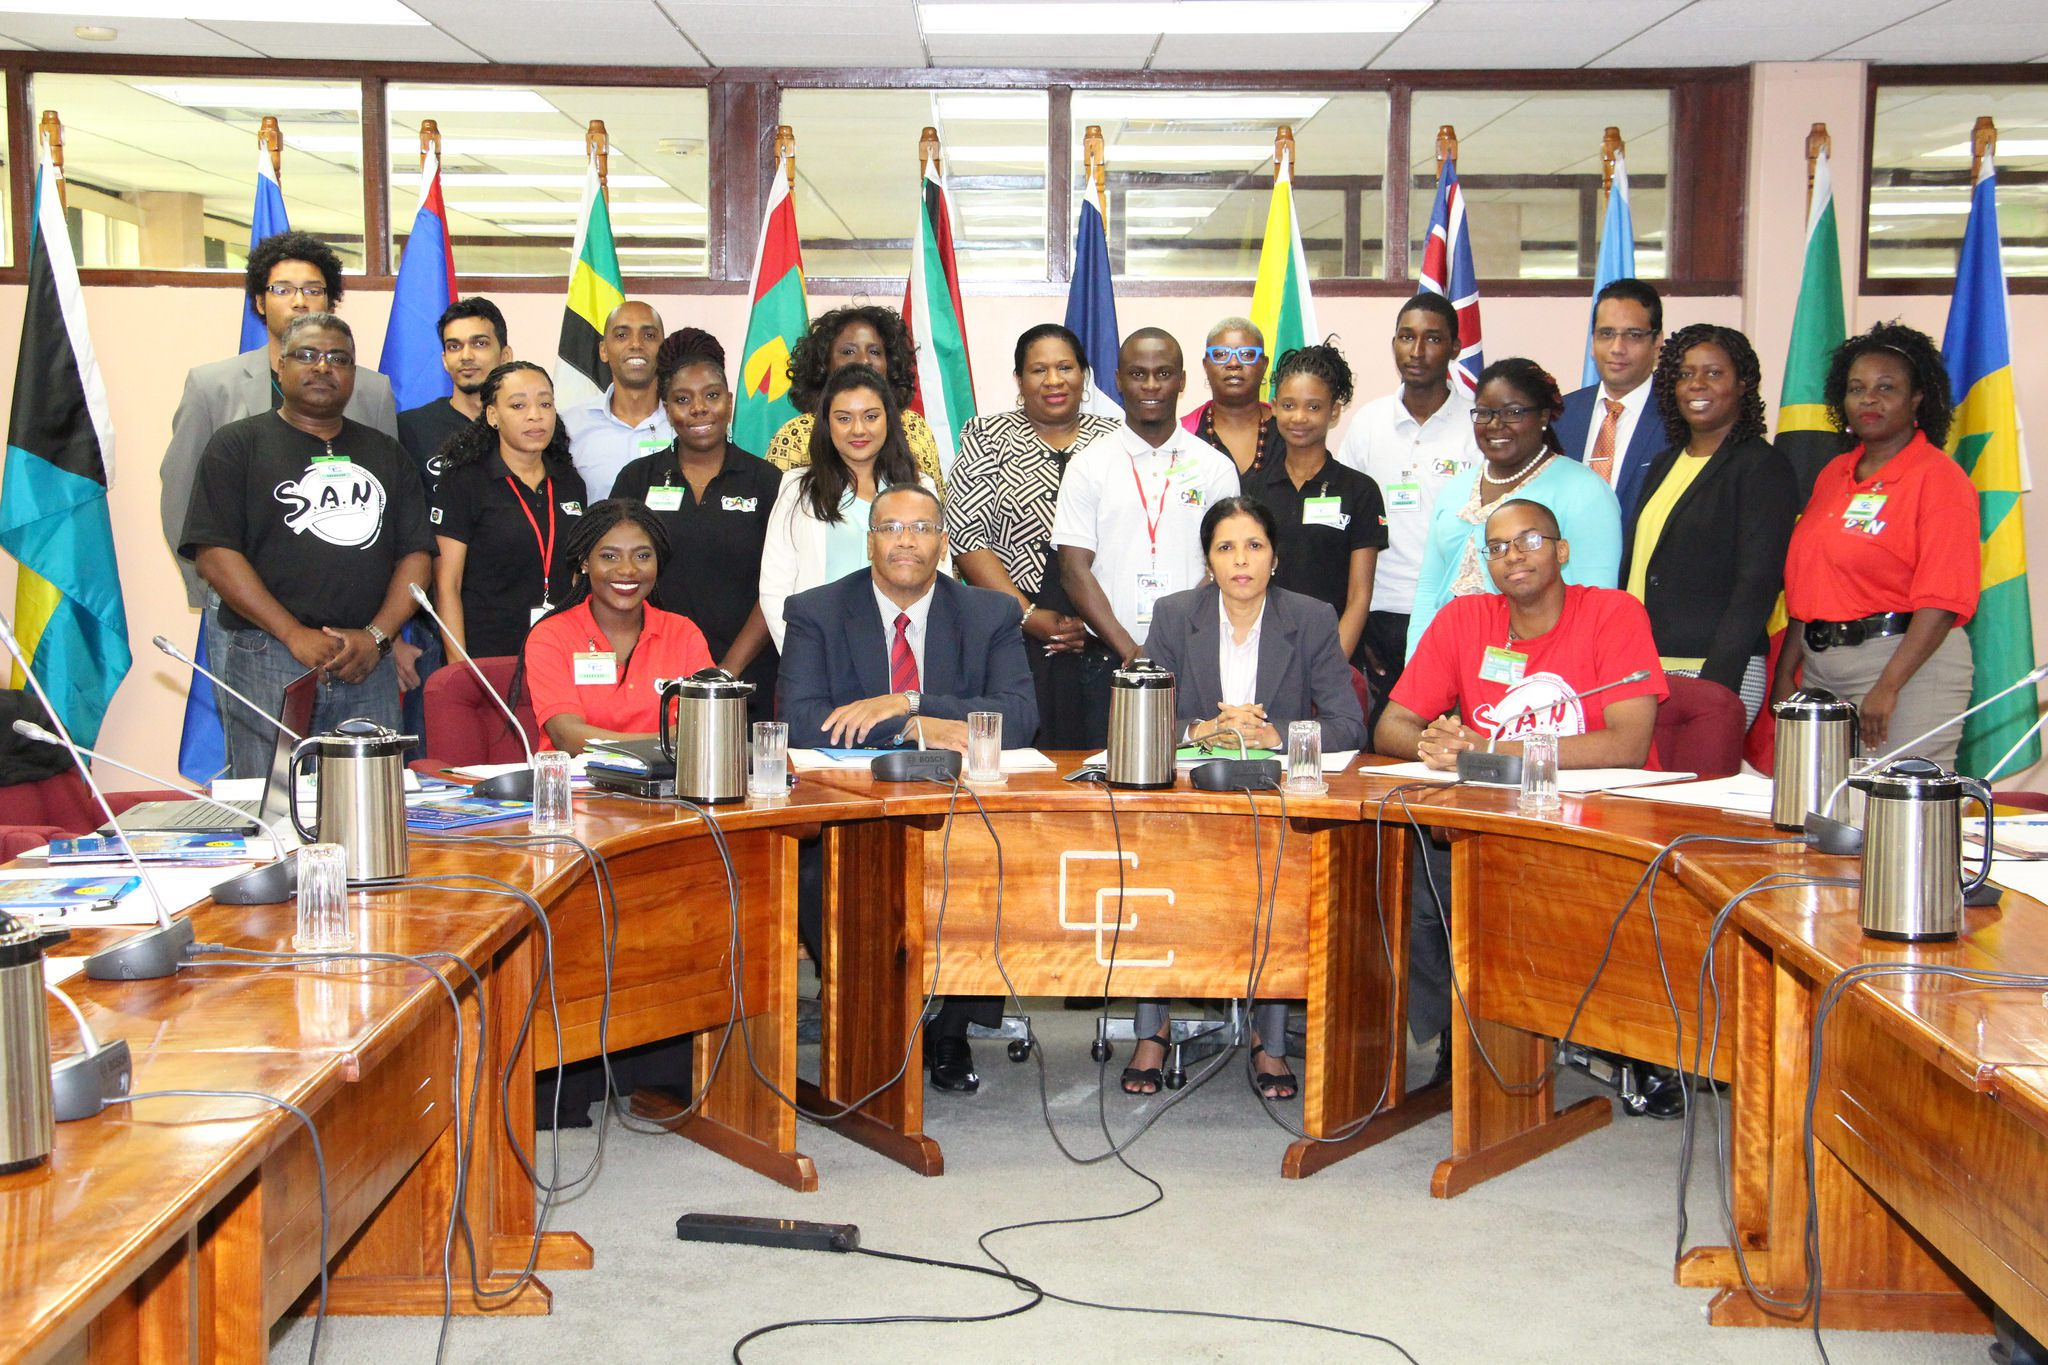 Amb. Manorma Soeknandan and Mr. Joseph Cox (seated, centre) with the visitors and CARICOM Secretariat staff members.